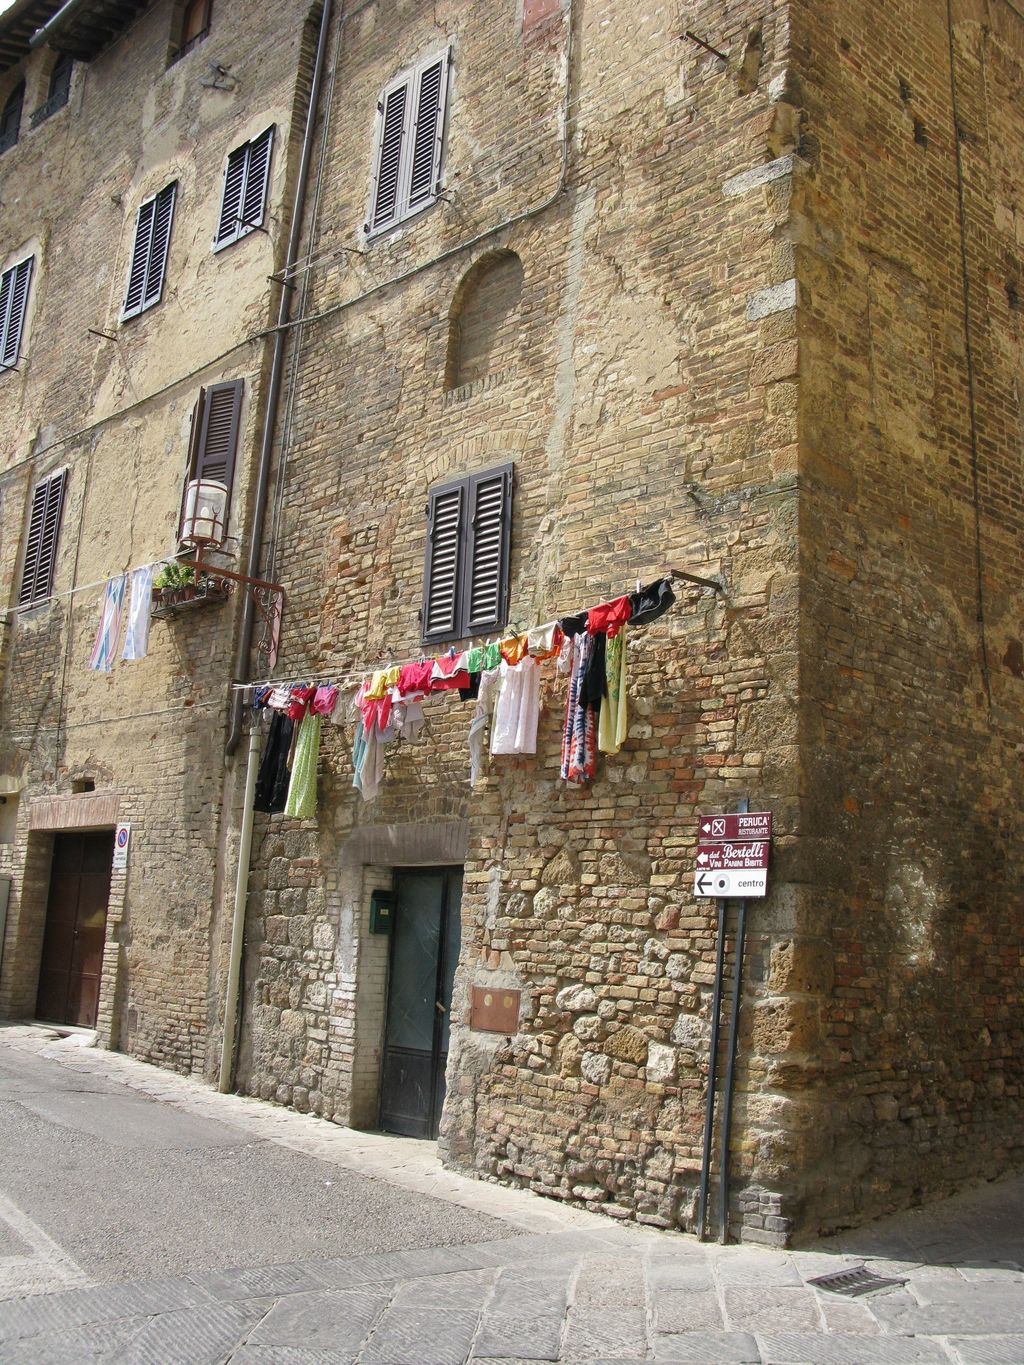 italy sweepstakes italian laundry on pinterest laundry venice and smelly 186